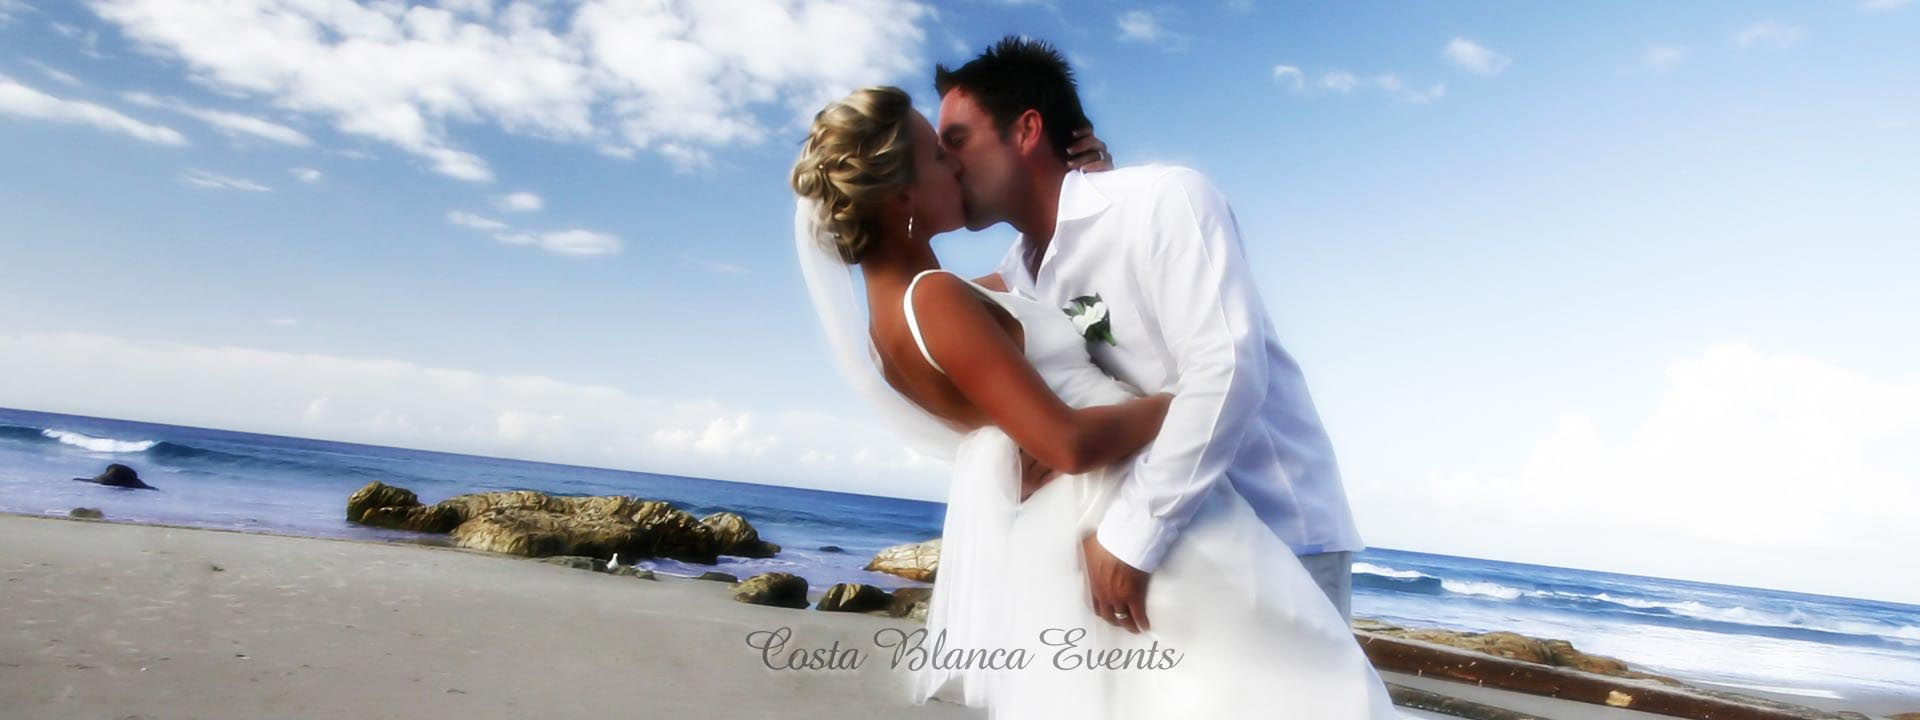 Destination weddings in Spain - wedding couple on the beach